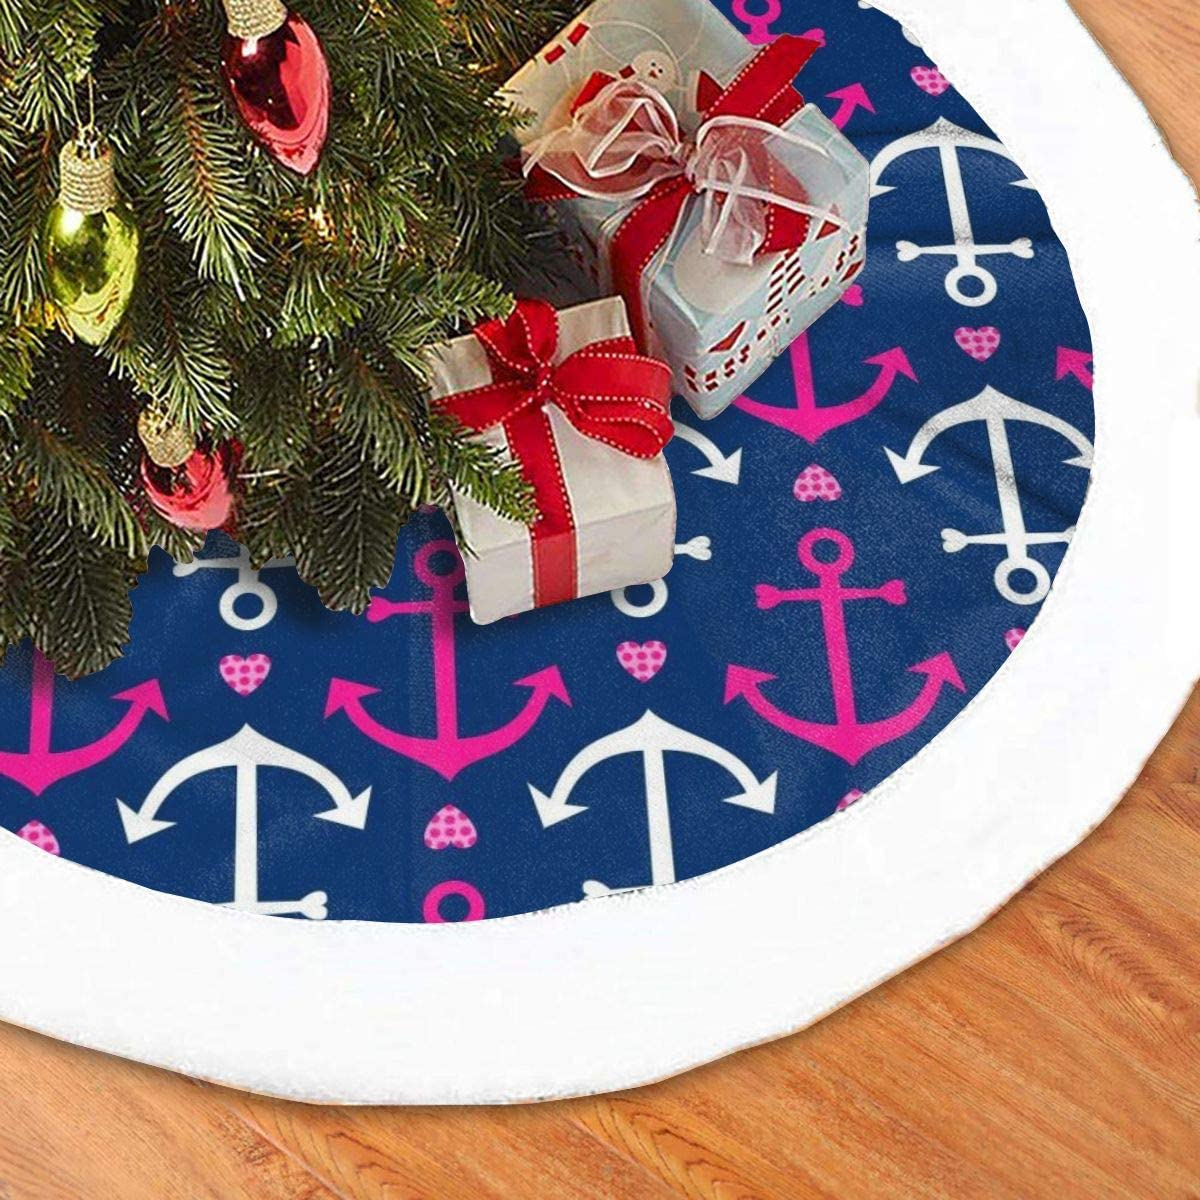 Amazon Com Christmas Tree Skirt 48 Inches Anchors Hearts Navy Pink Large Xmas Skirt Rustic Xmas Tree Holiday Decorations Home Kitchen